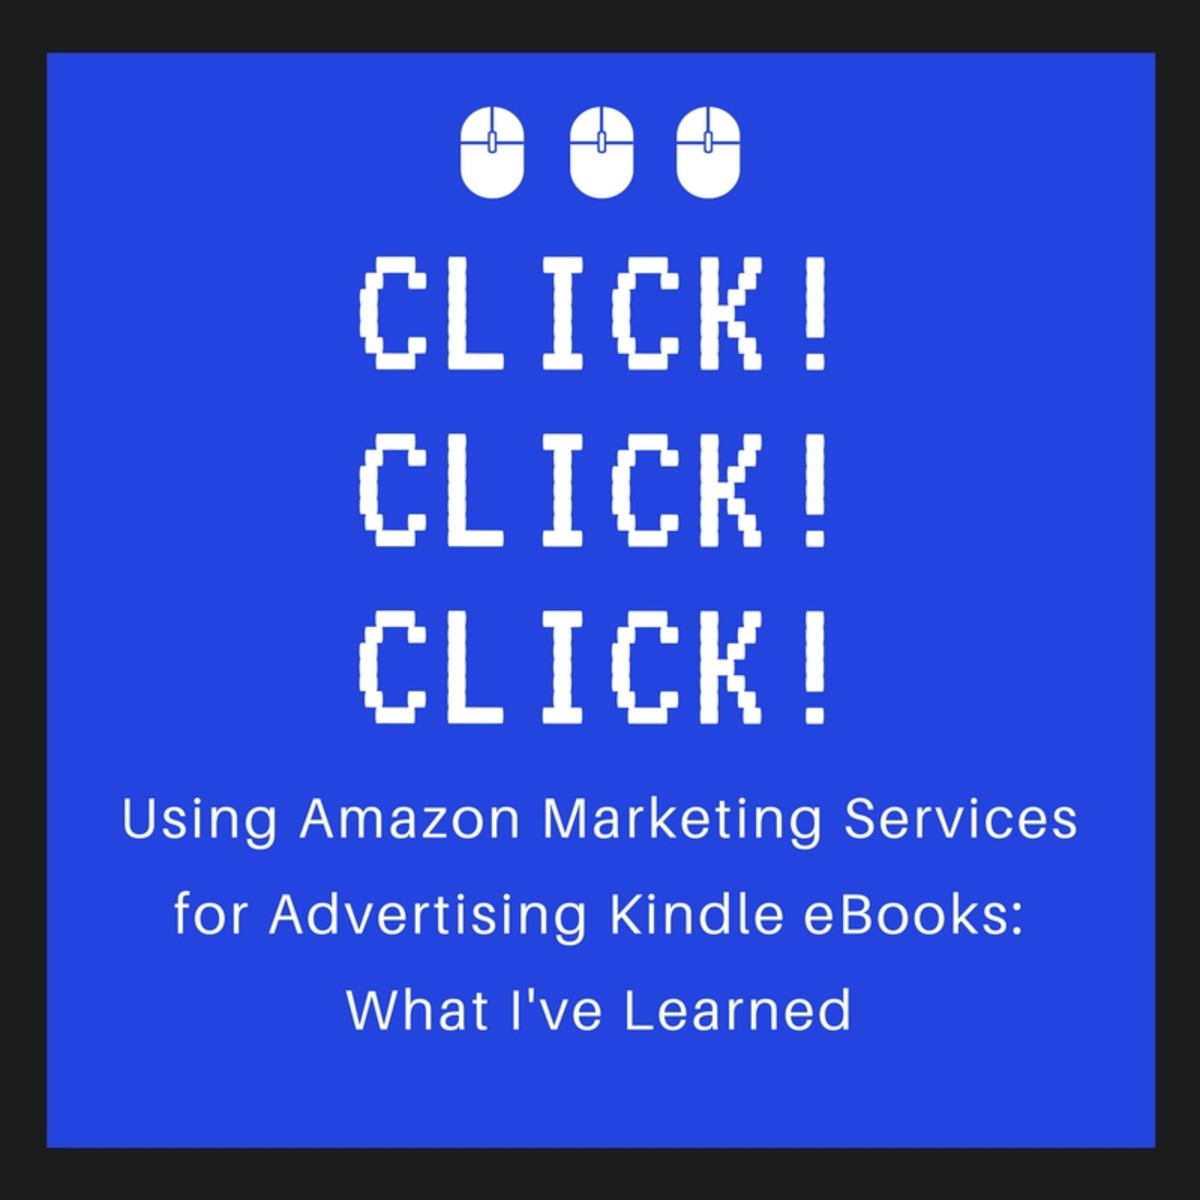 amazon-marketing-services-for-advertising-kindle-ebooks-what-ive-learned